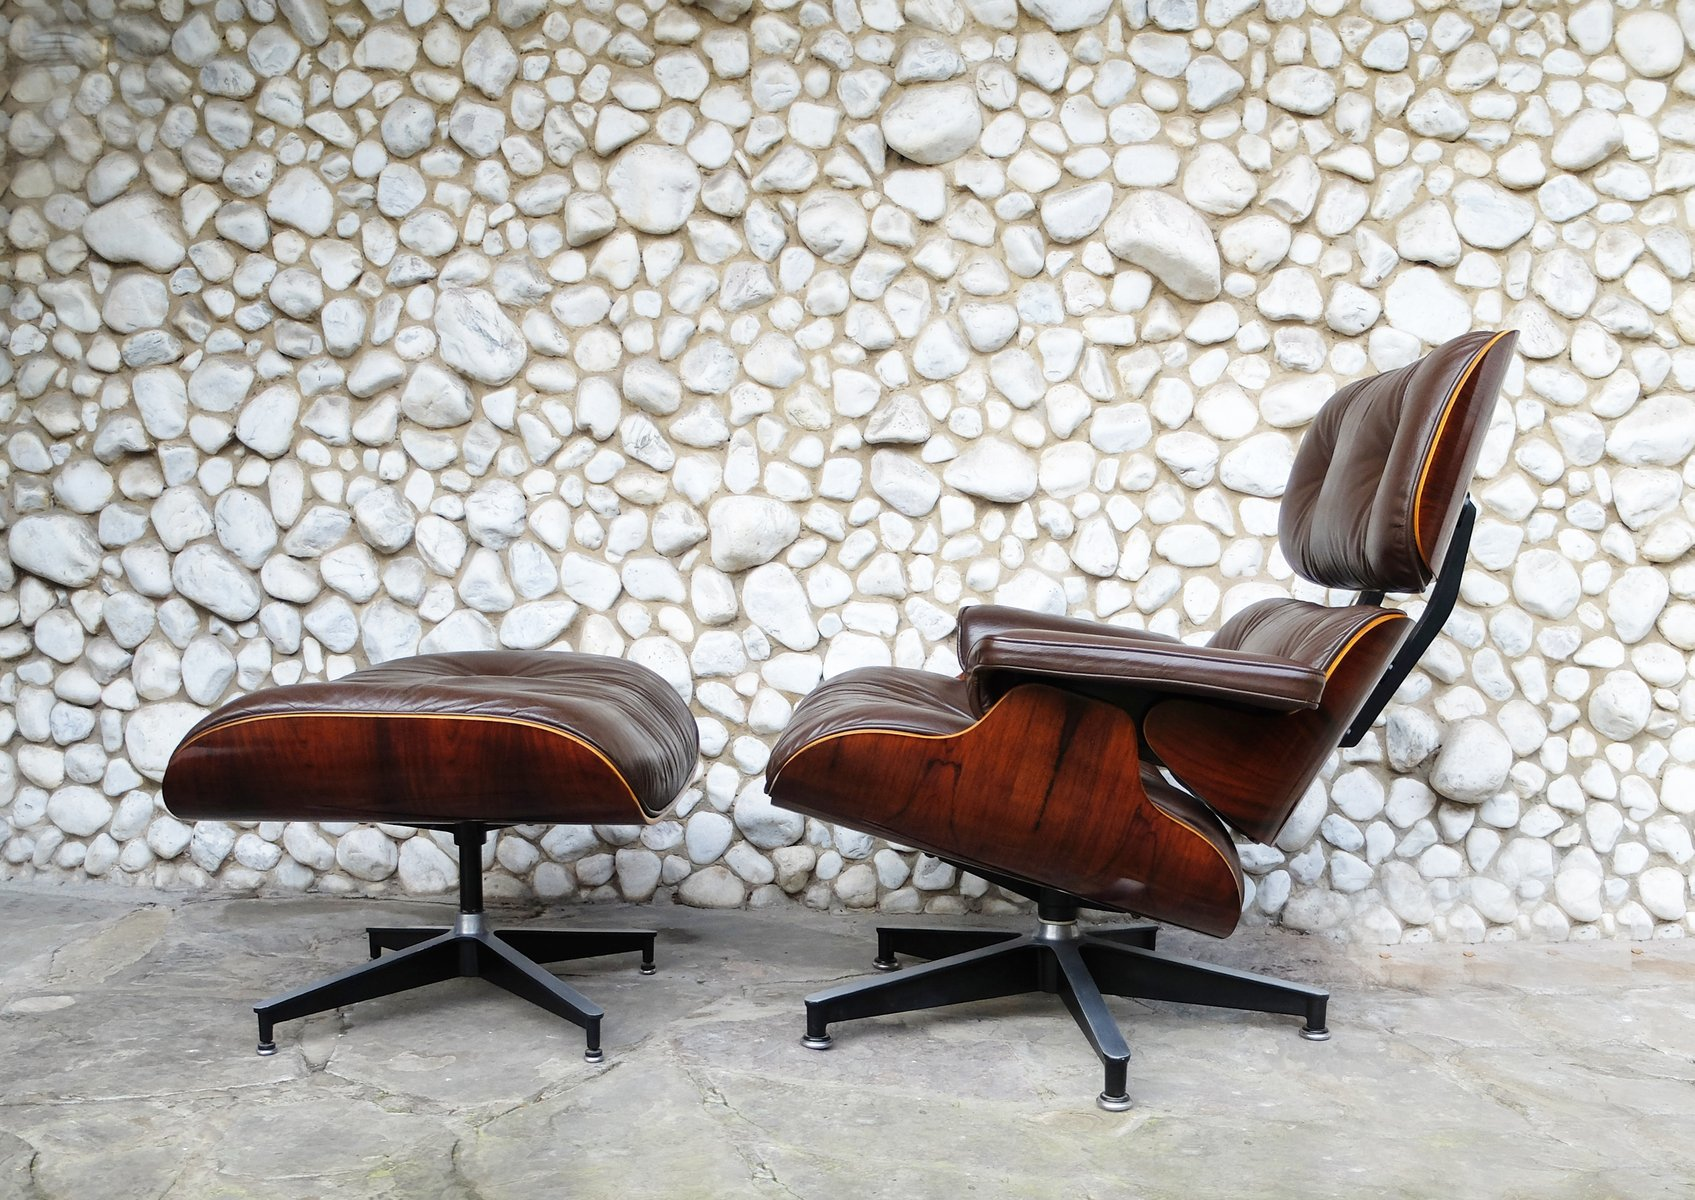 vintage rosewood veneer lounge chair ottoman by charles ray eames for herman miller 1978. Black Bedroom Furniture Sets. Home Design Ideas